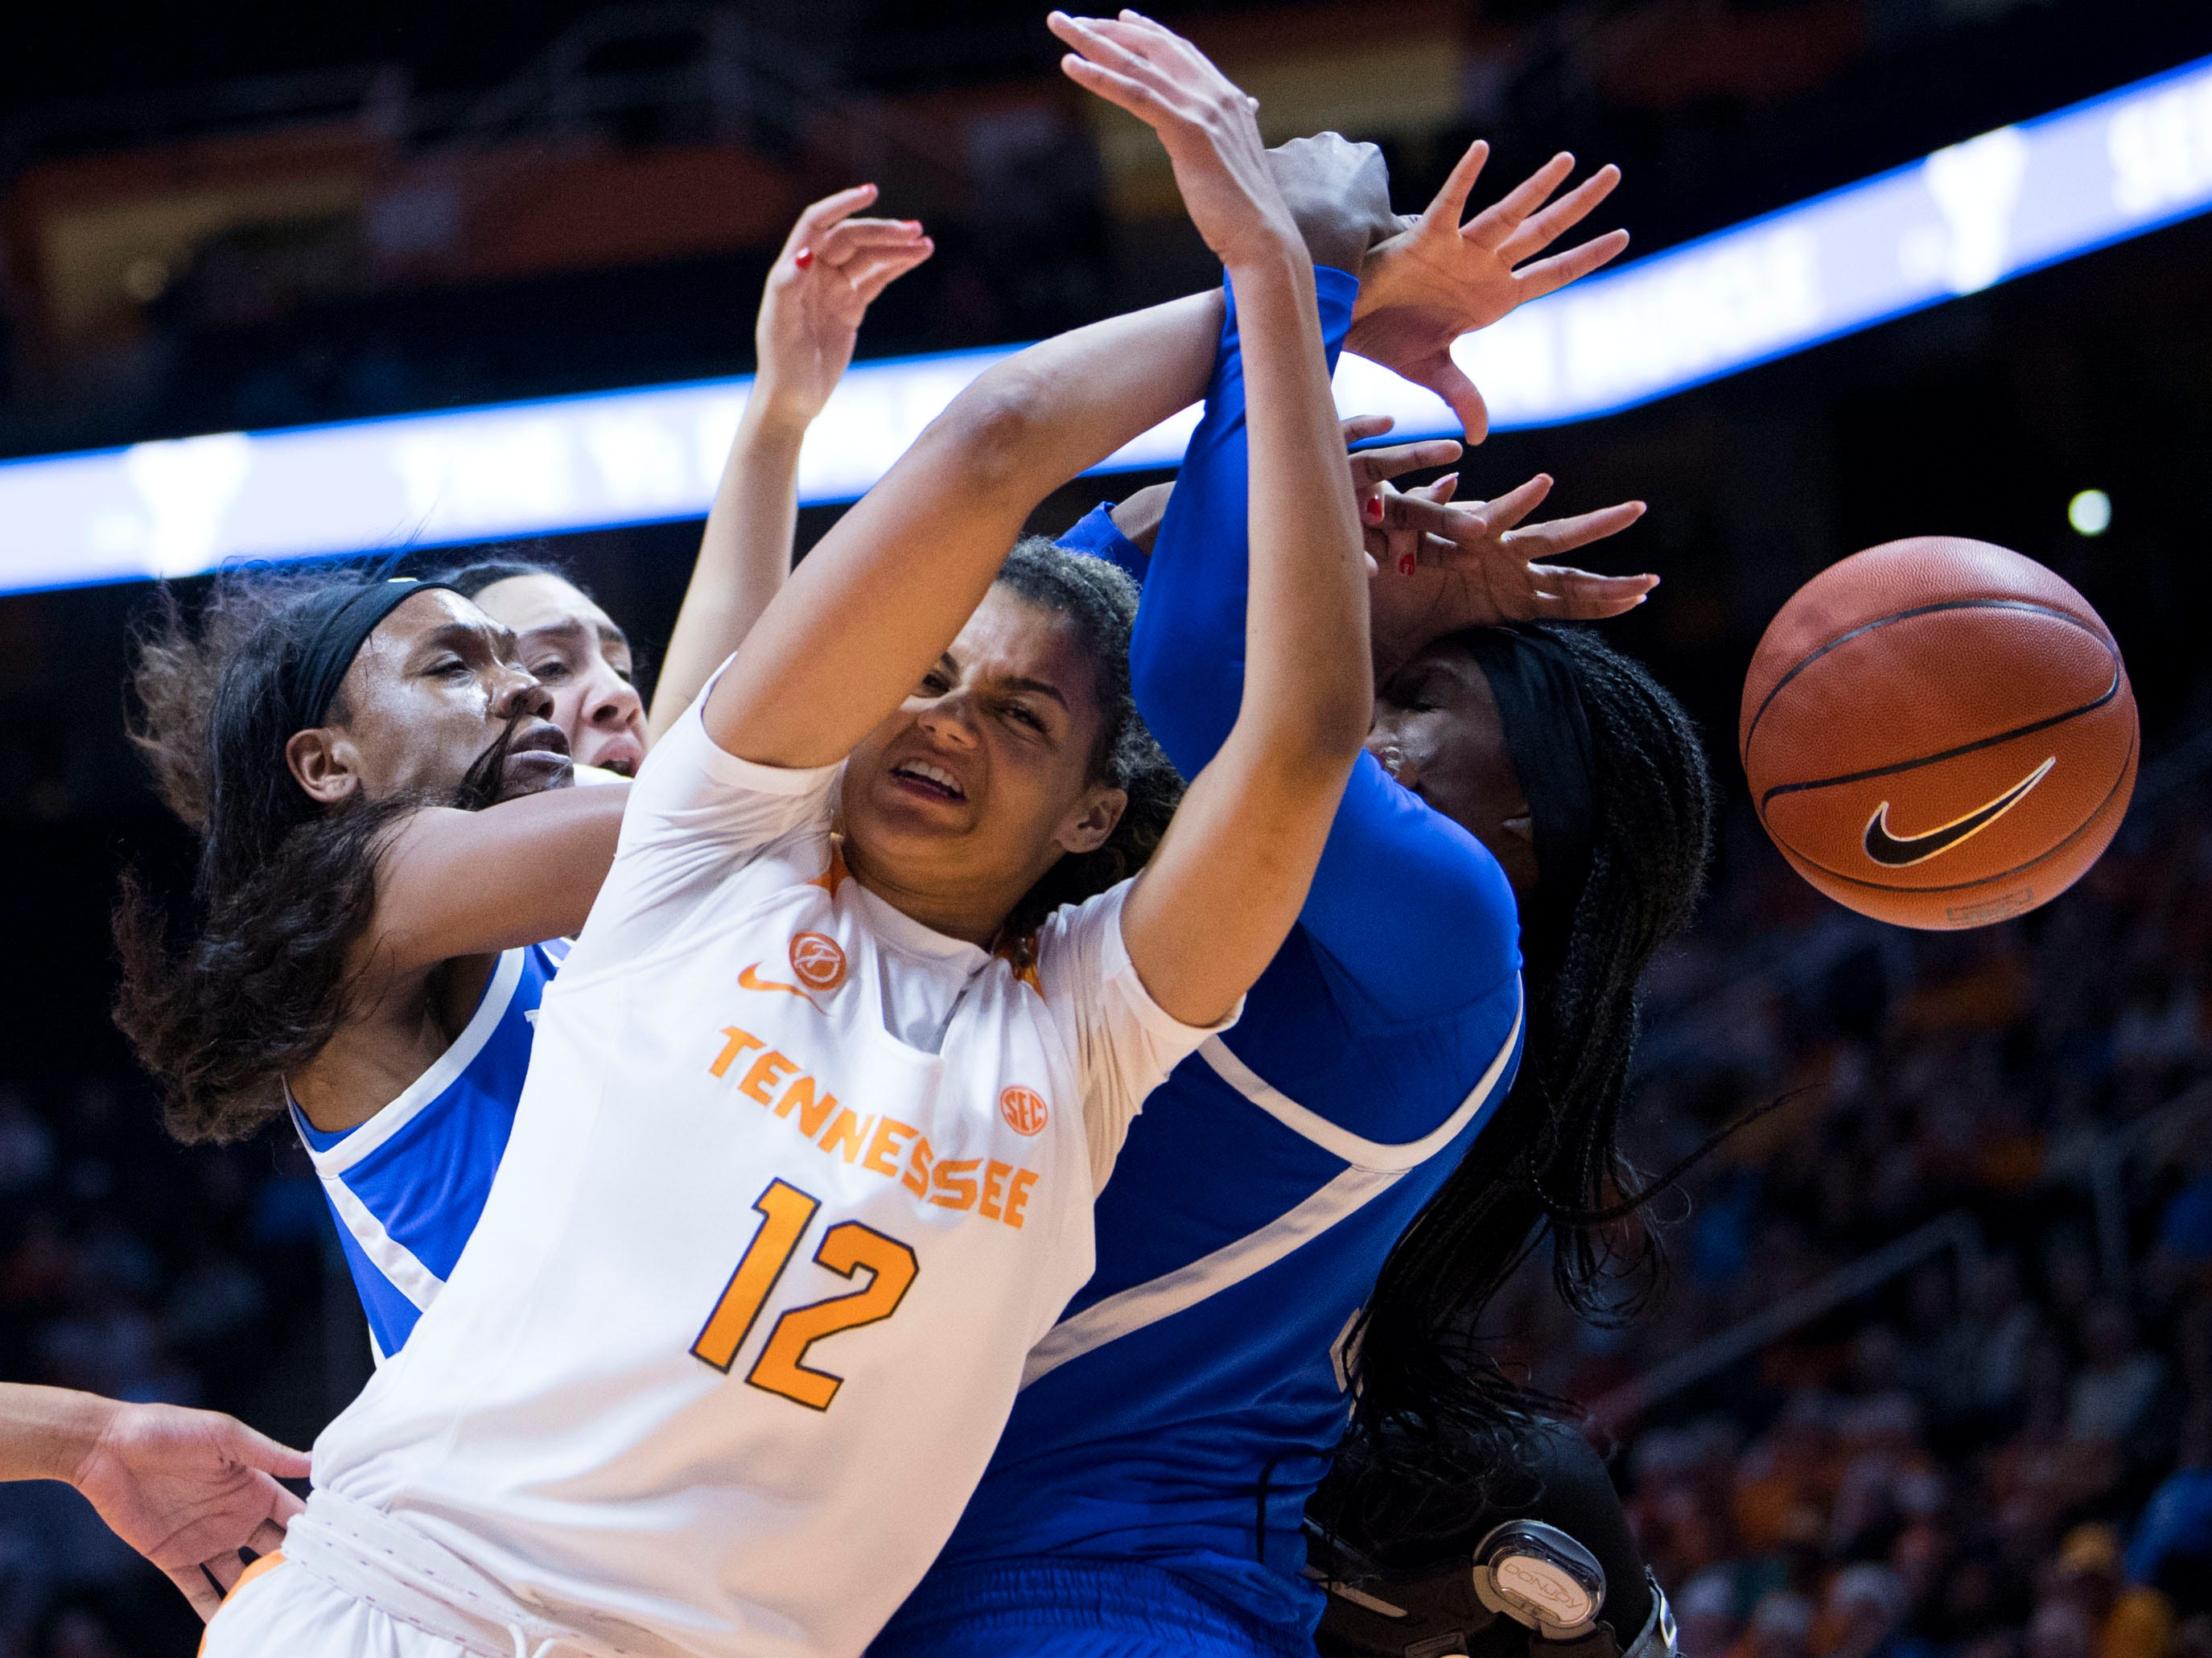 Tennessee's Rae Burrell (12) and Kentucky players get tangled up going after the rebound on Thursday, January 10, 2019.